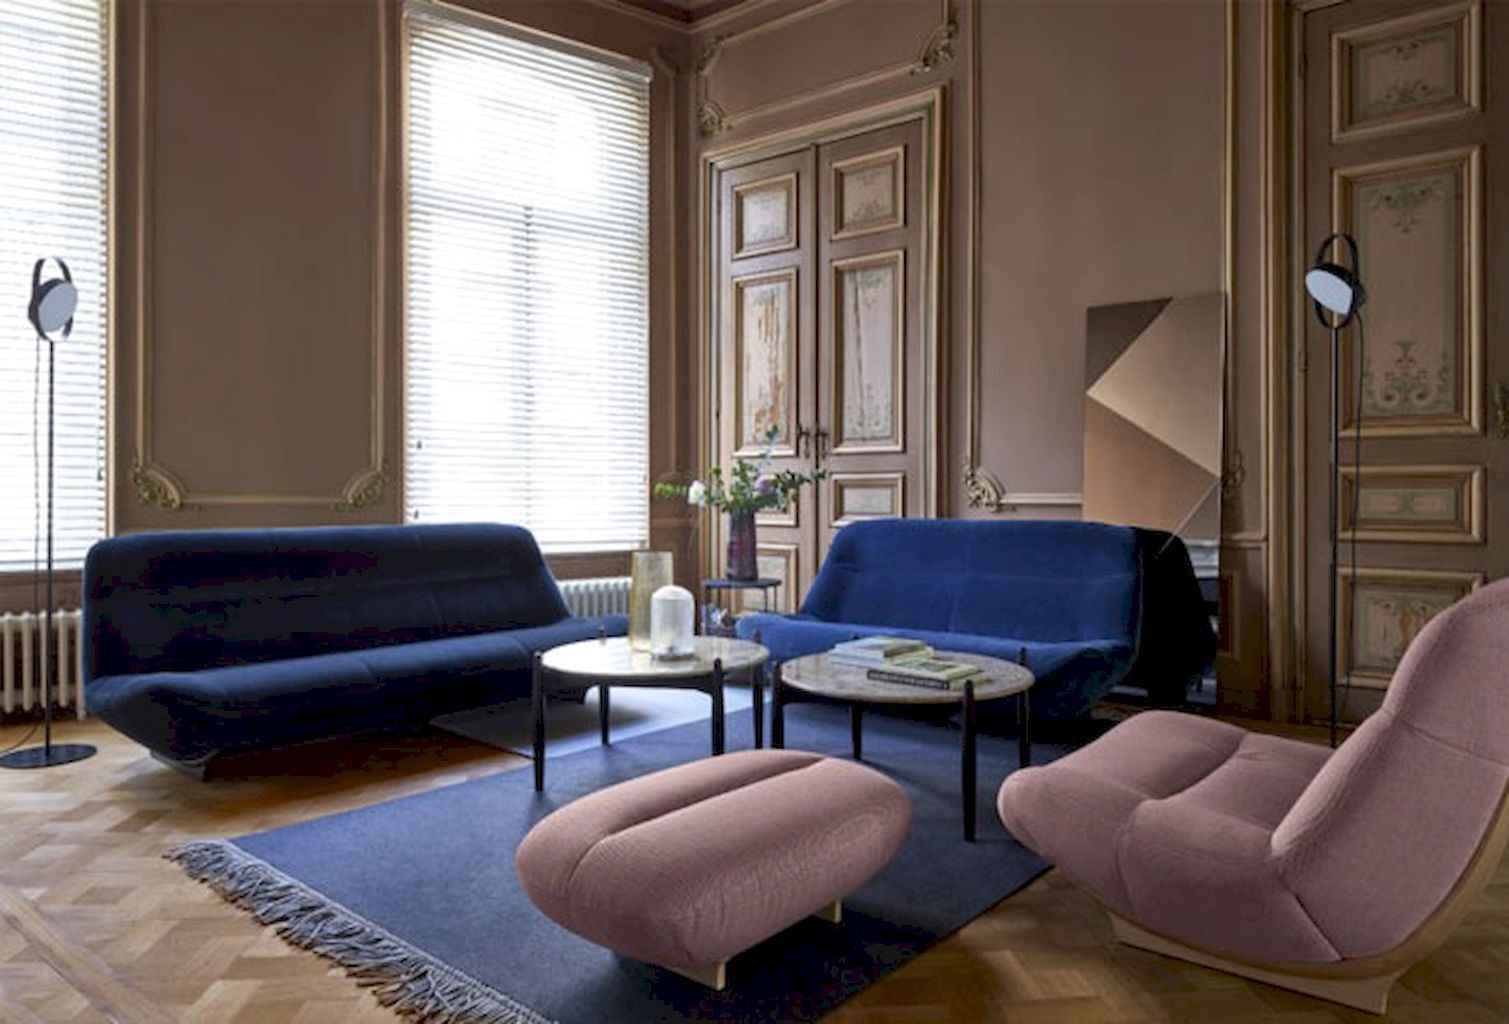 50 living room designs and ideas trends 2018 25 for 50s living room ideas